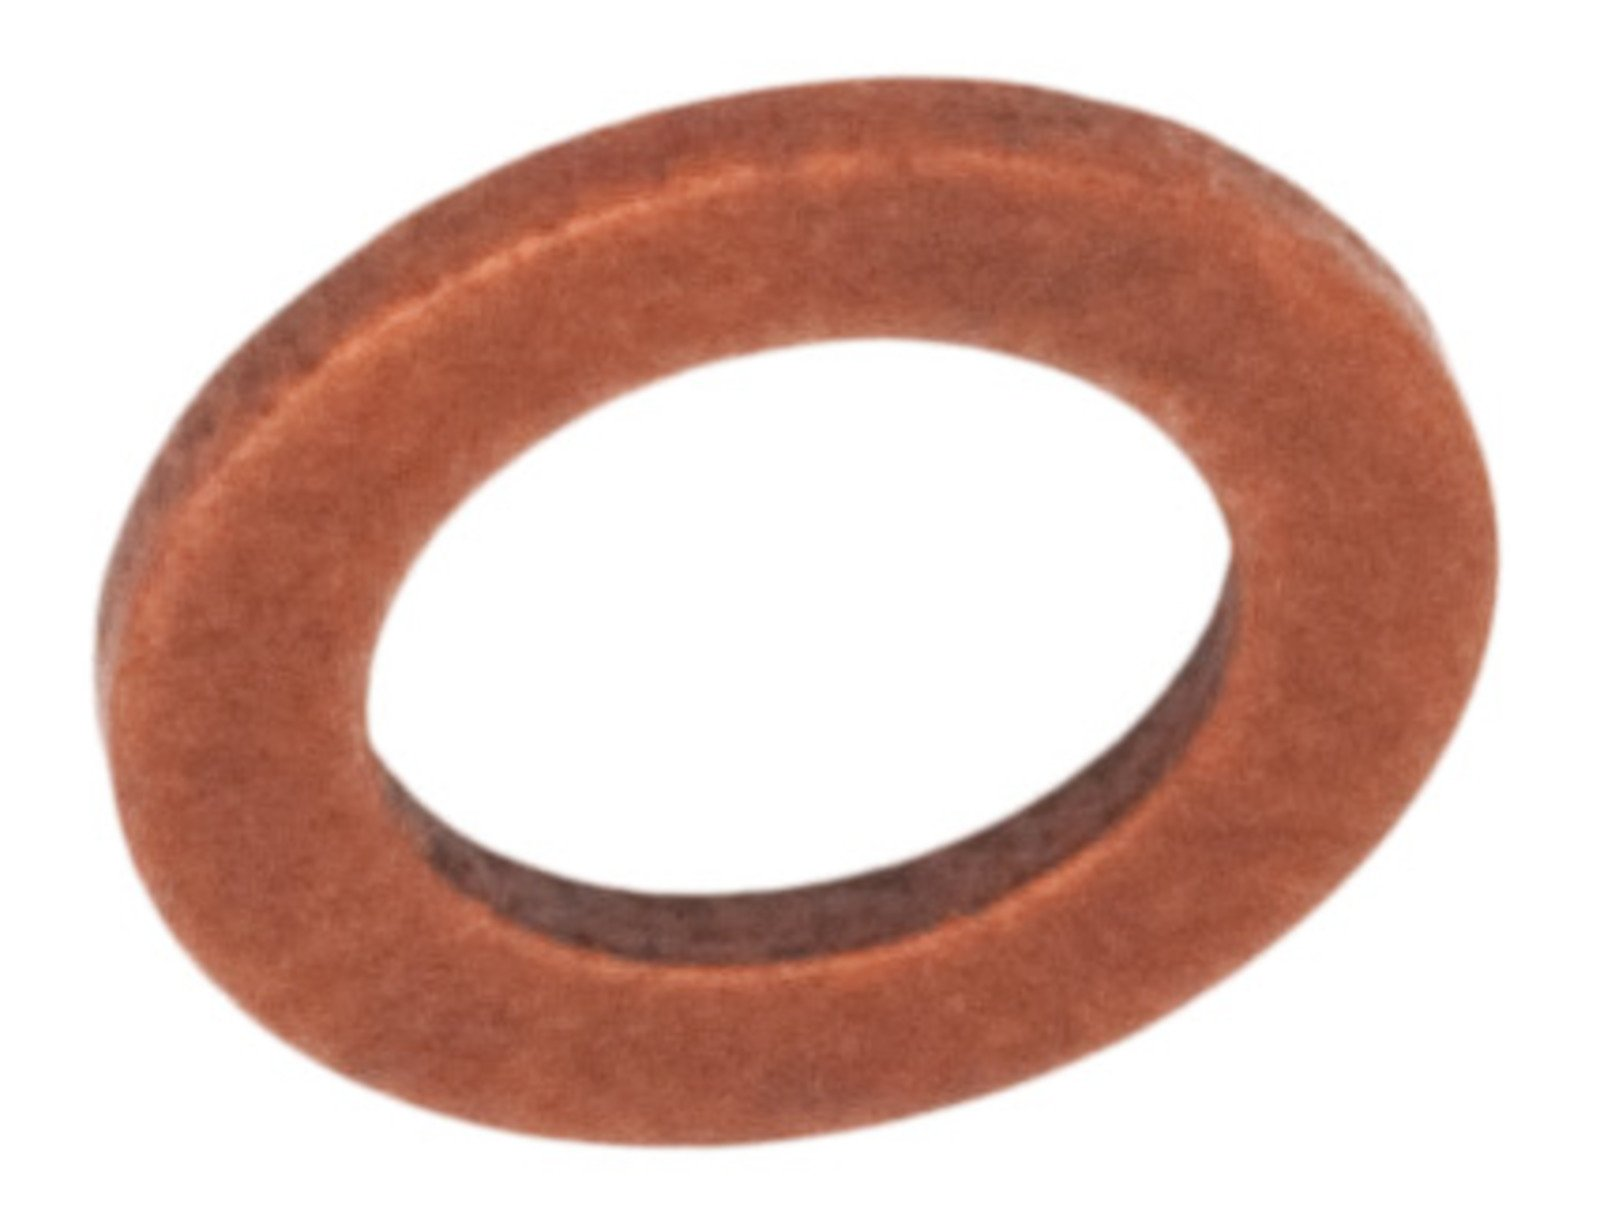 Washer Plate (Cu-Washer) Oil Filter Cover (e.g. for Vent Screw) 5x10x1mm  2-077